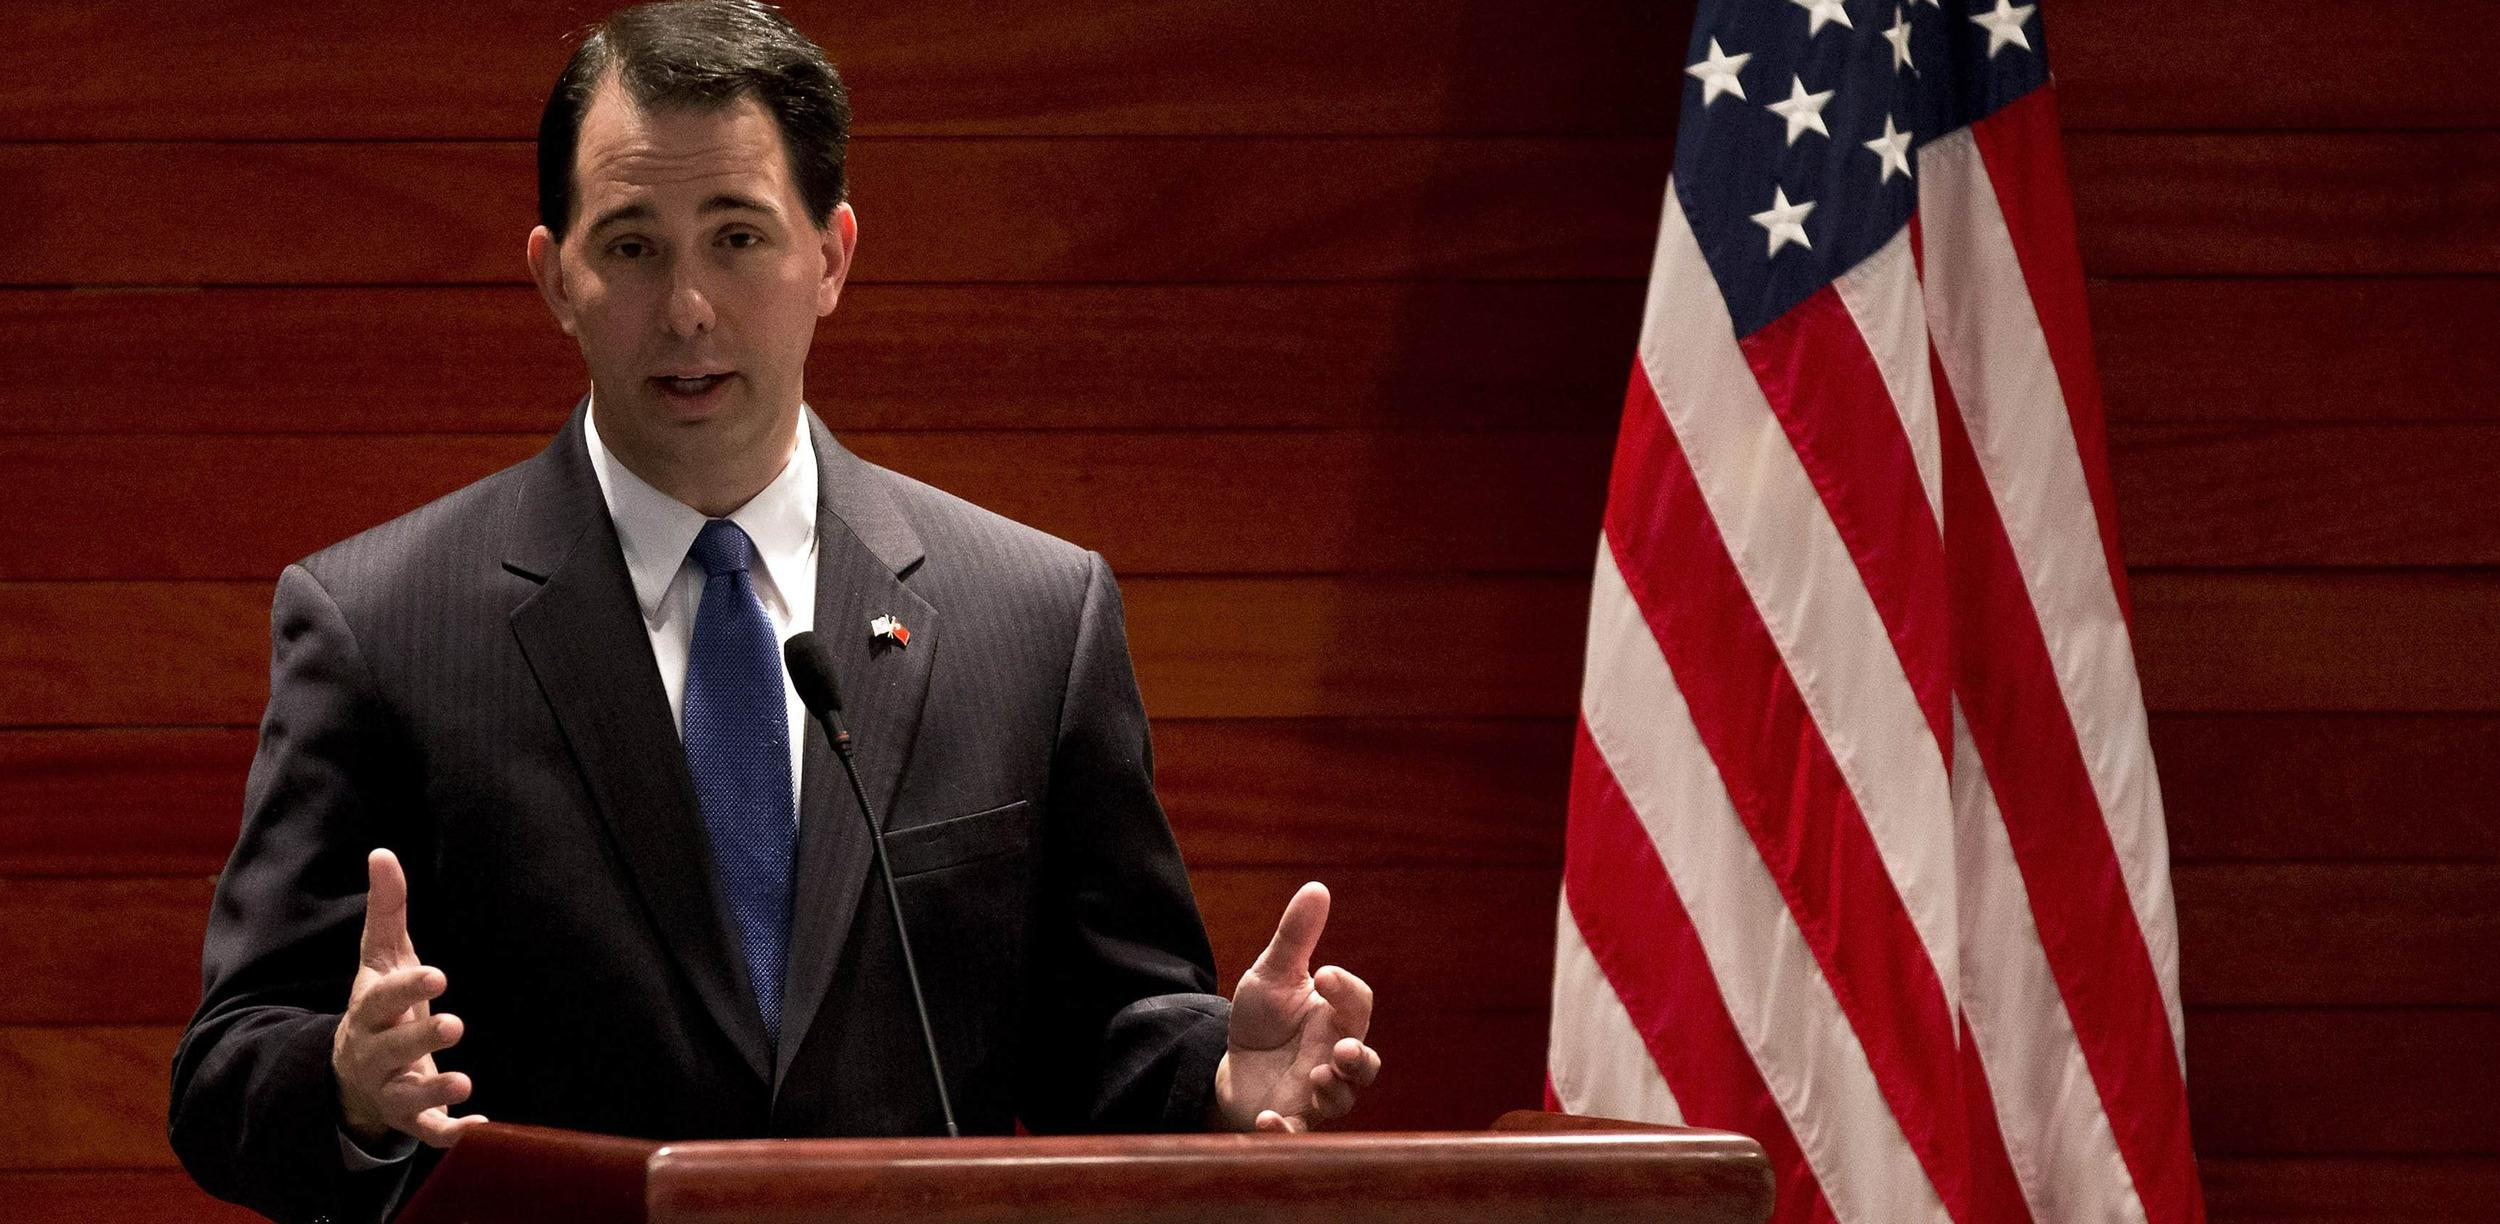 Image: File photo of Wisconsin Governor Scott Walker speaking after witnessing a signing memorandum of understanding of the commercial deals between U.S. and China at the U.S. Embassy in Beijing